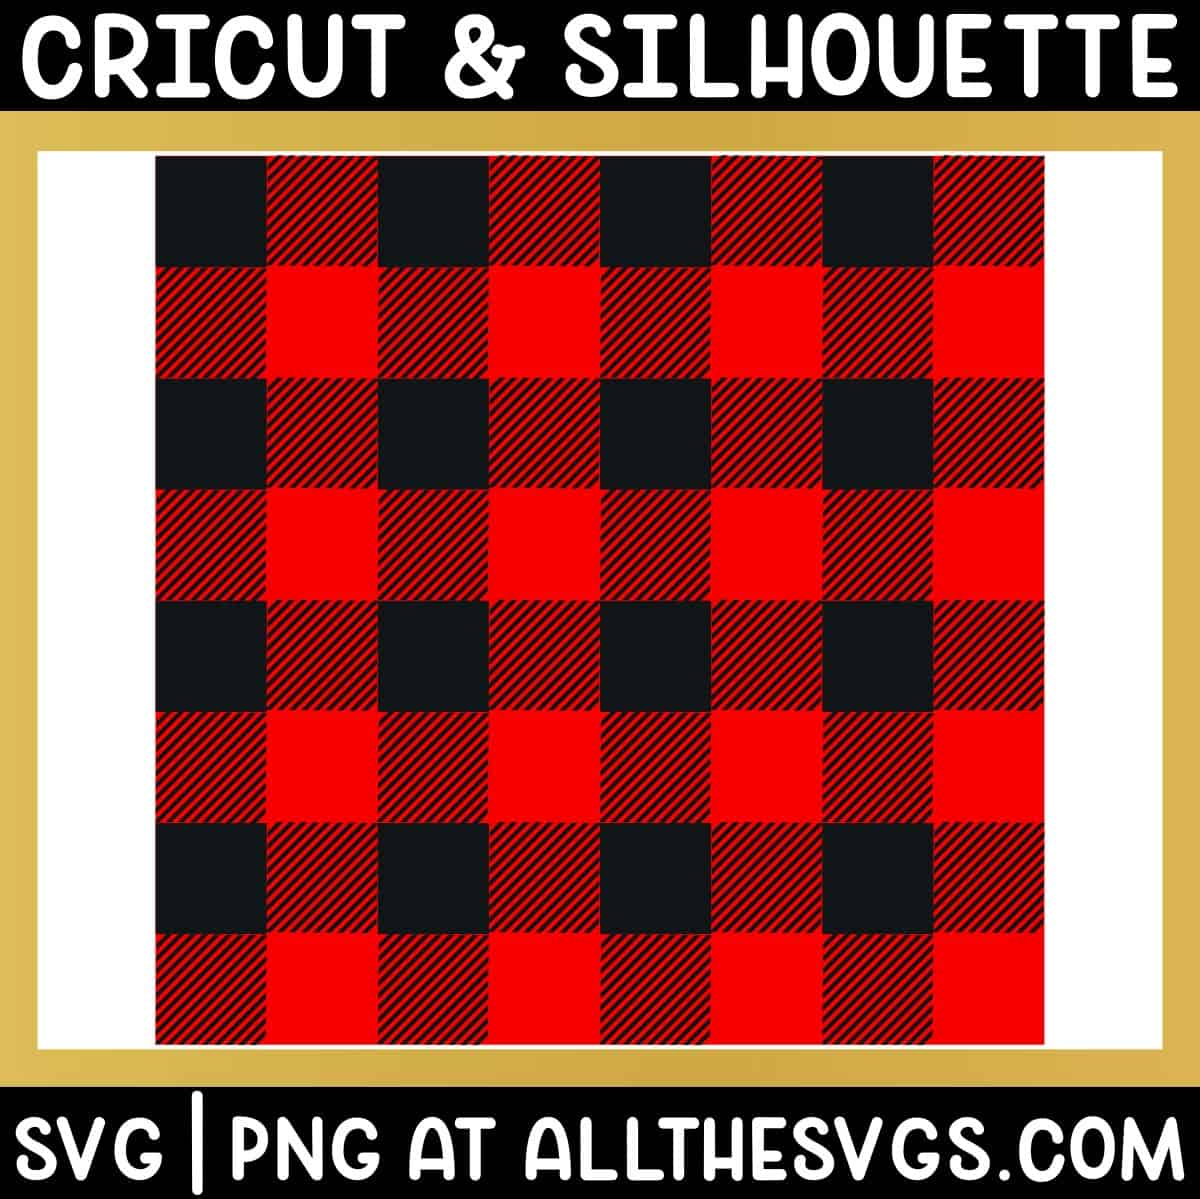 free buffalo plaid pattern svg file with black checkered solid and diagonally striped squares.